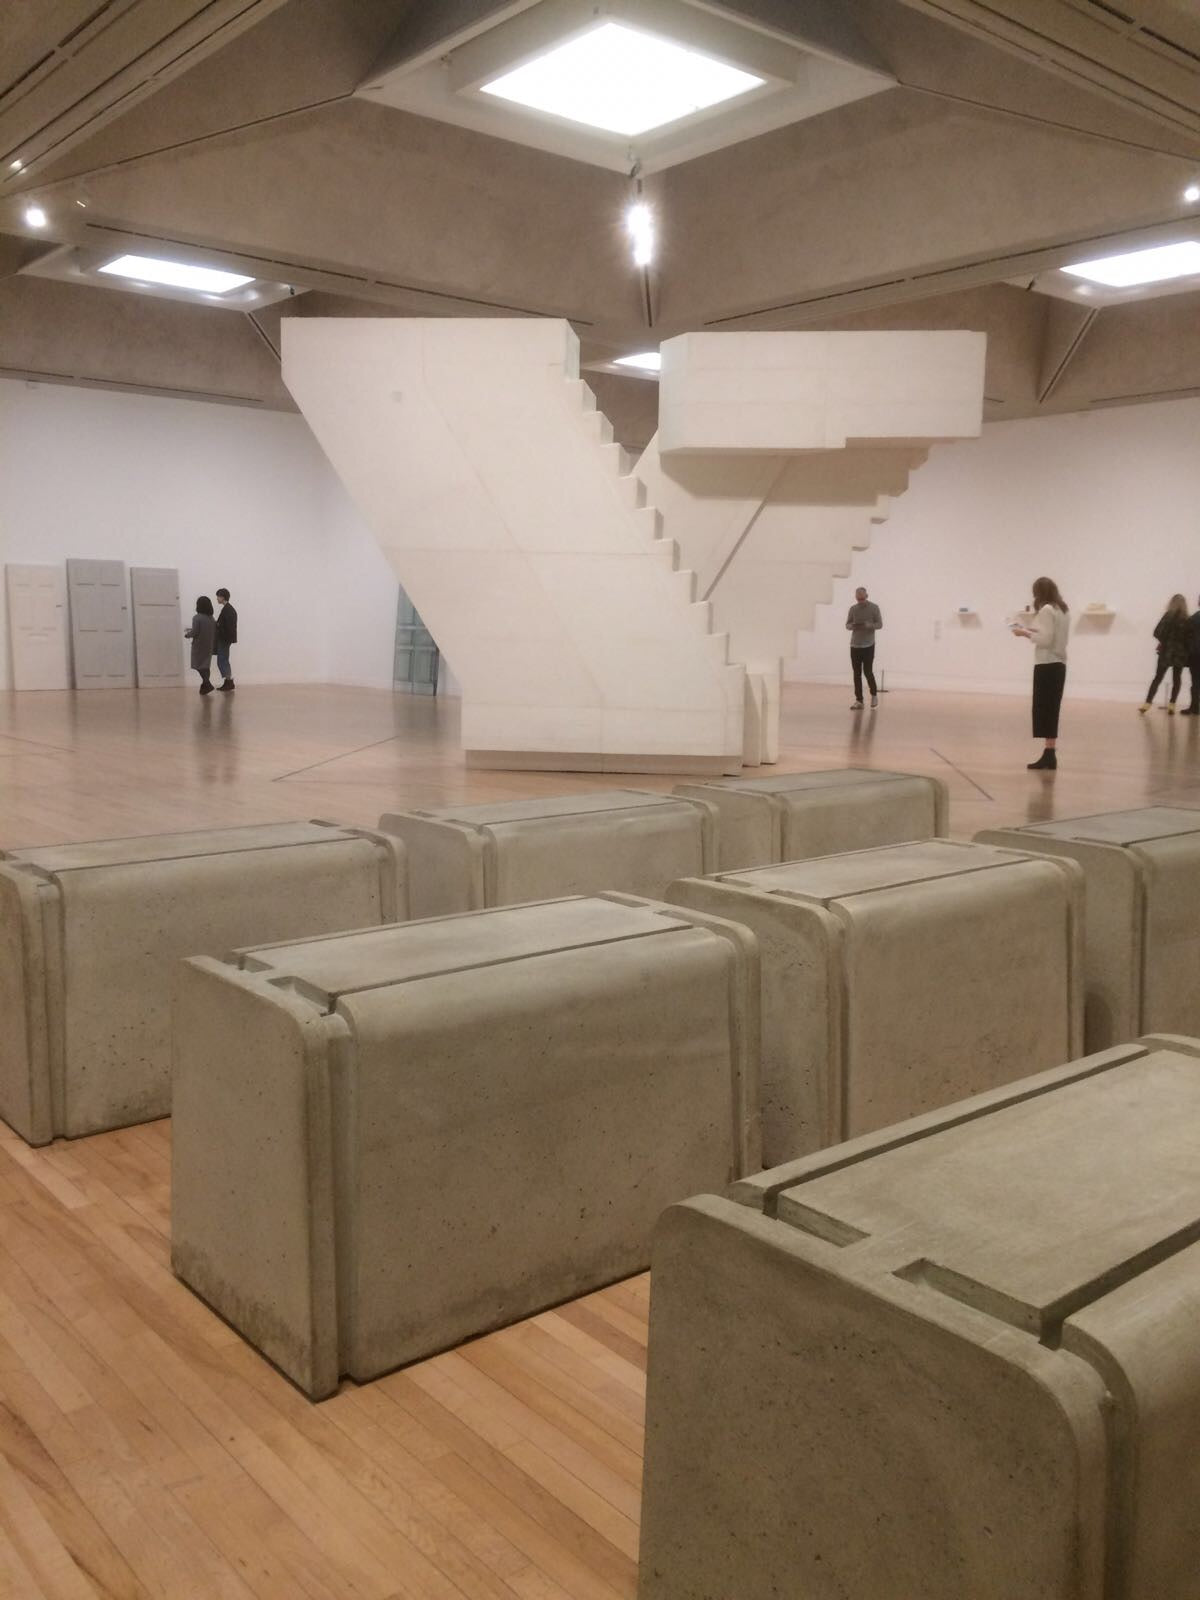 Make Space:  Rachel Whiteread